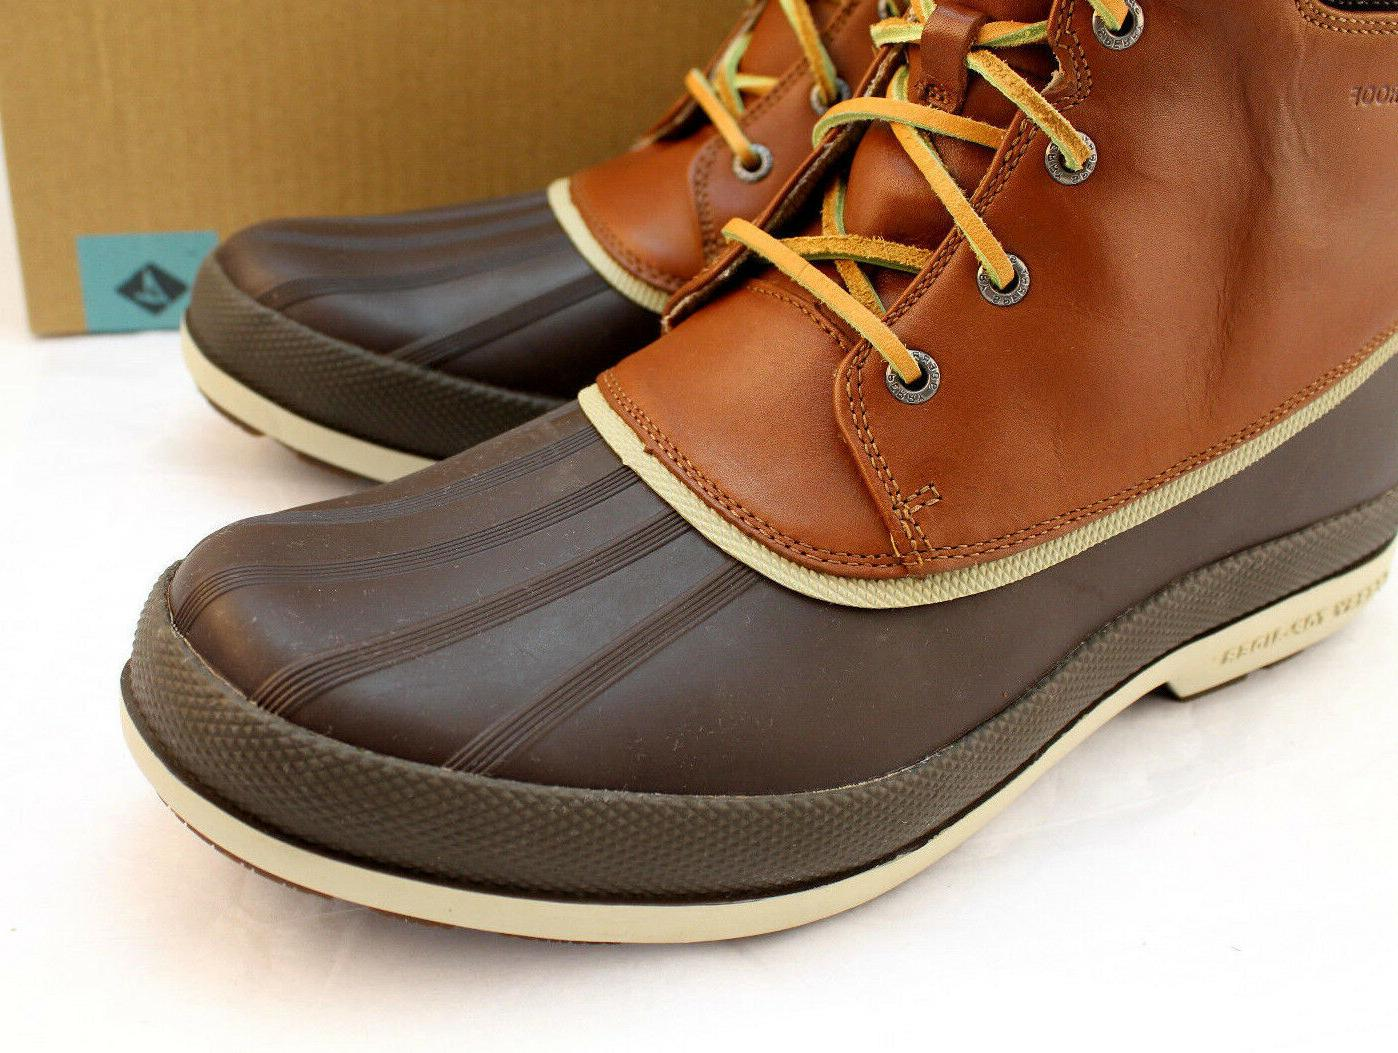 Sperry Top-Sider Size 12 Leather Retail